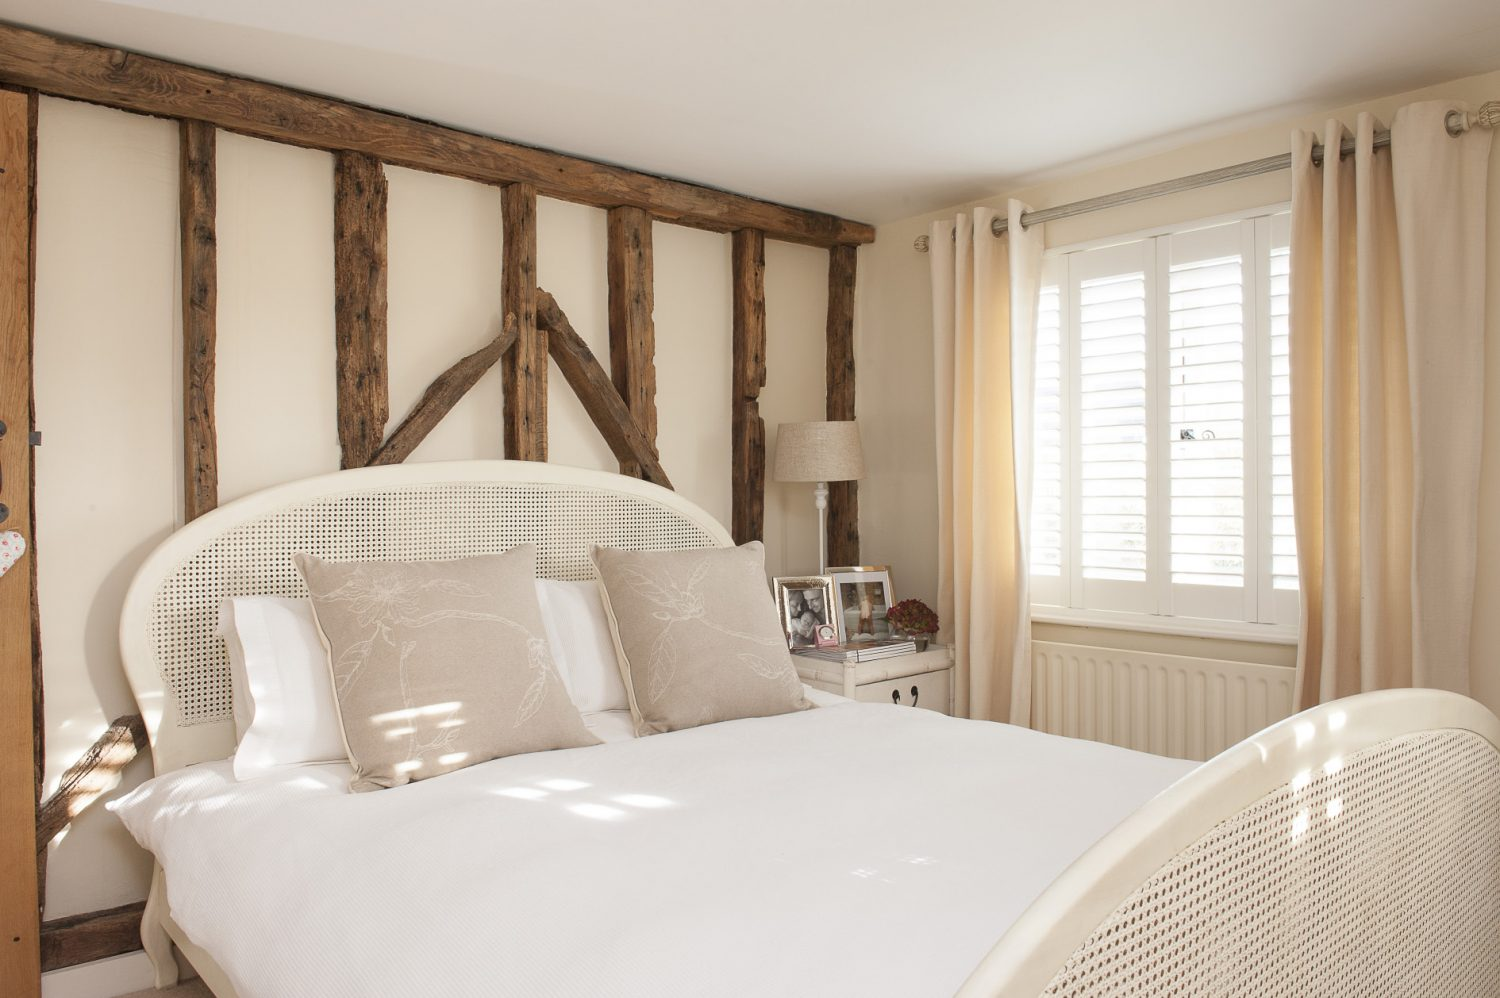 The master bedroom furniture is all from OKA including the lovely white rattan headed and footed bed and rattan and bamboo wardrobe and chest of drawers